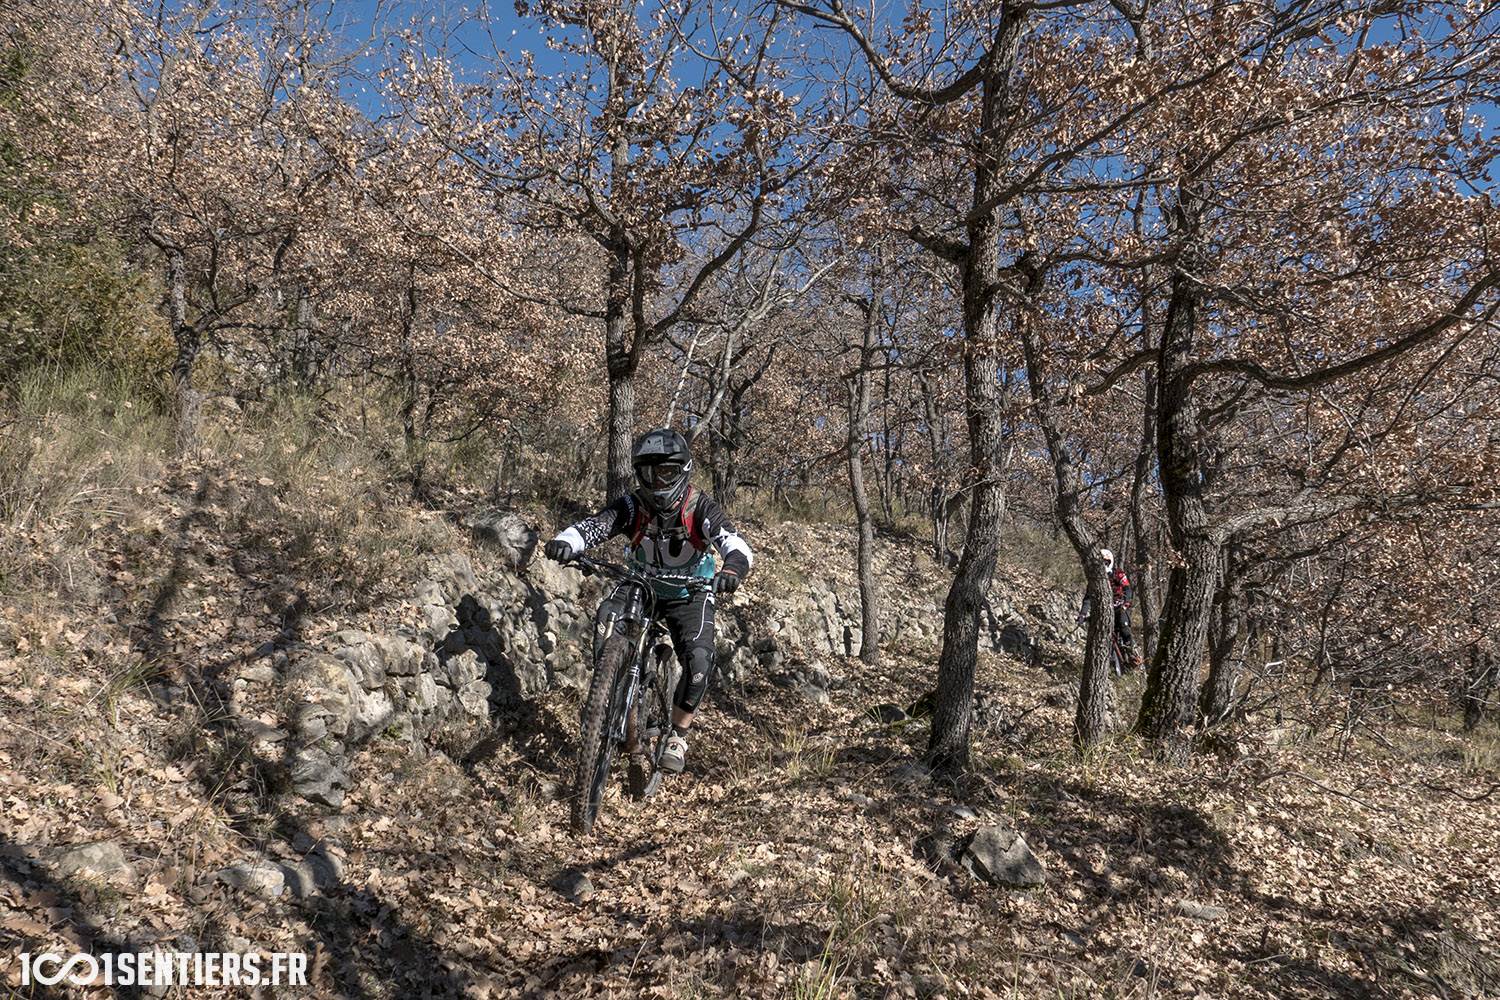 1001sentiers-session-enduro-alpes-maritimes-vtt-p1100341